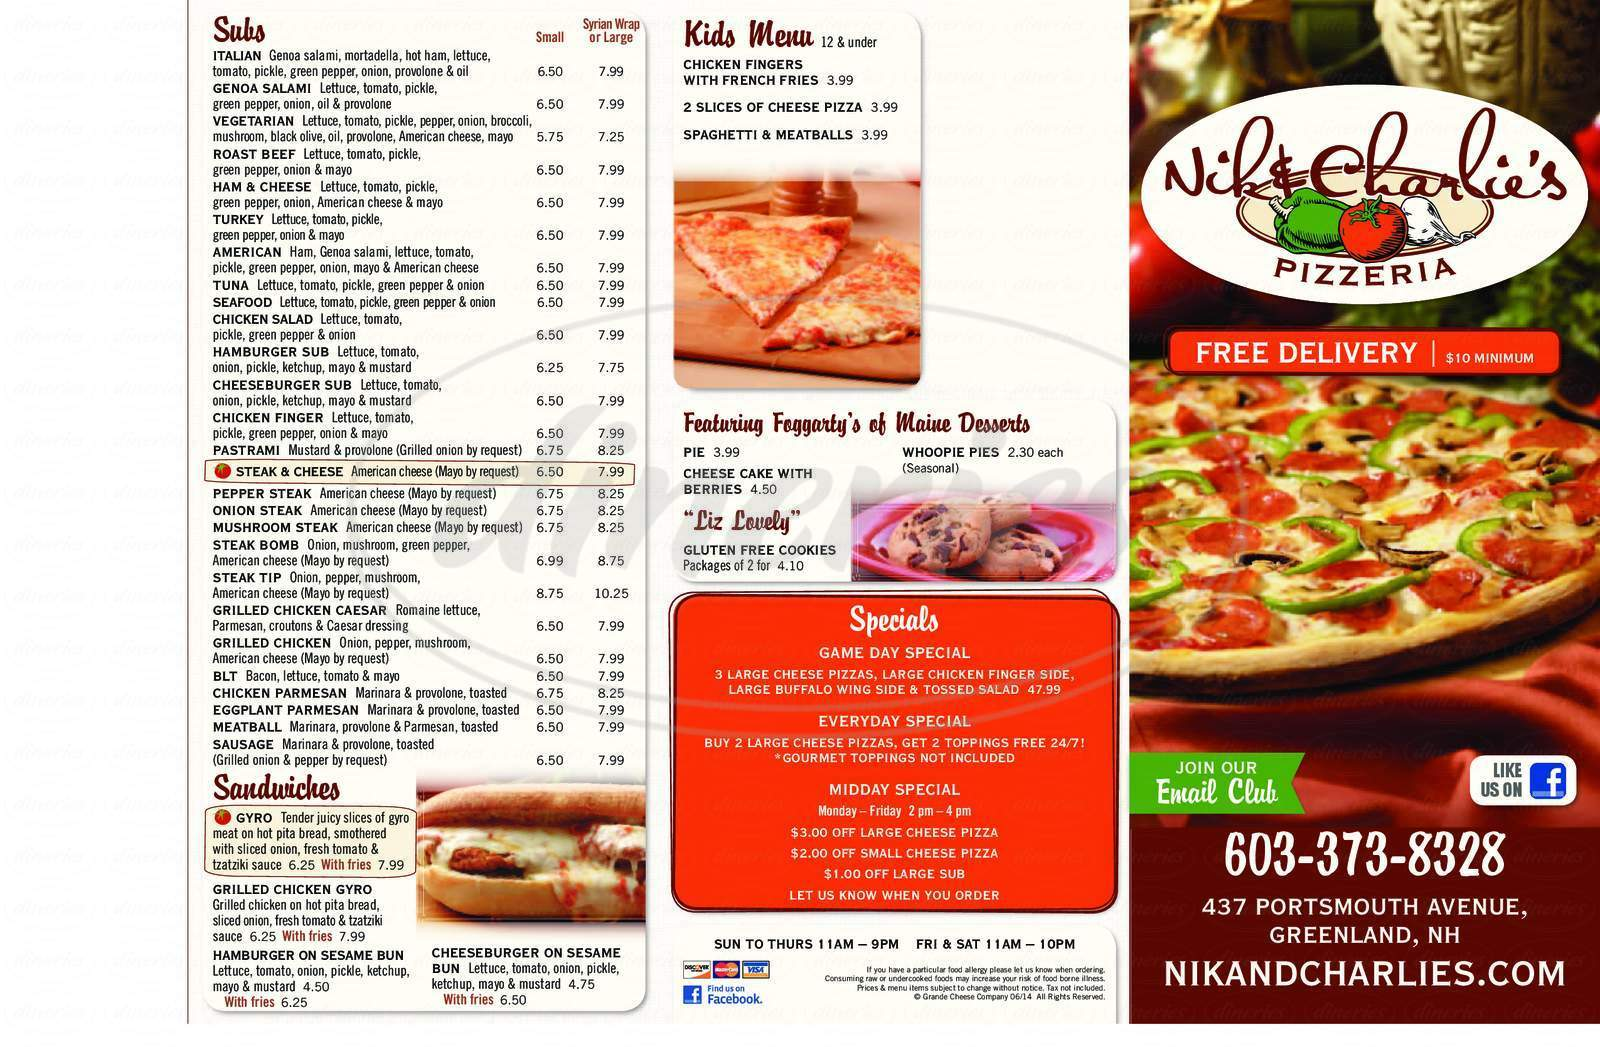 menu for Nik & Charlies Pizzeria